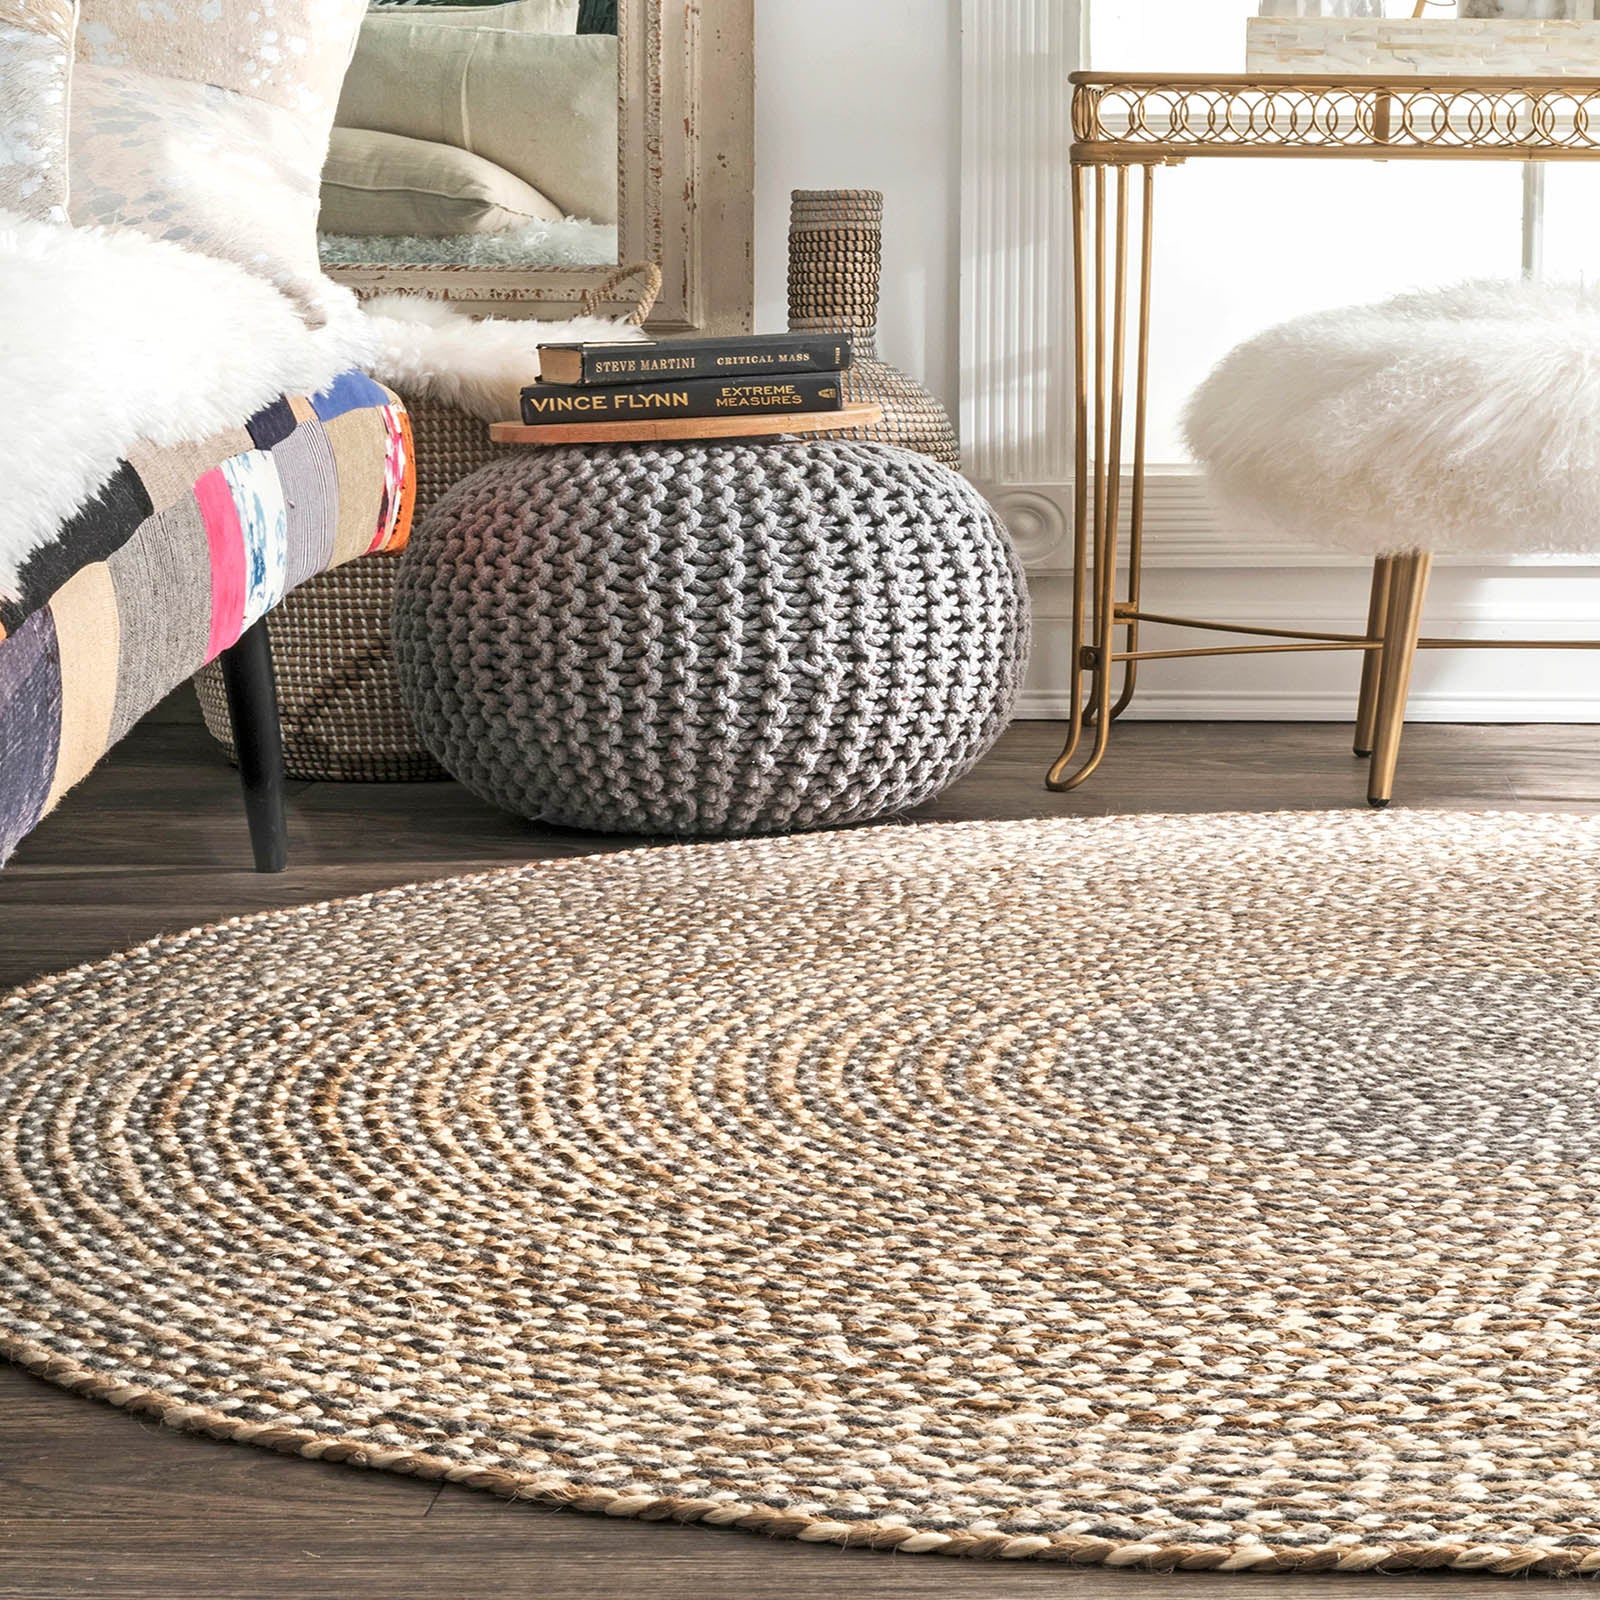 100 cm Braided Round handmade Wool Rug JH-2351-100 -  سجادة صوف دائرية مضفرة 100 سم - Shop Online Furniture and Home Decor Store in Dubai, UAE at ebarza